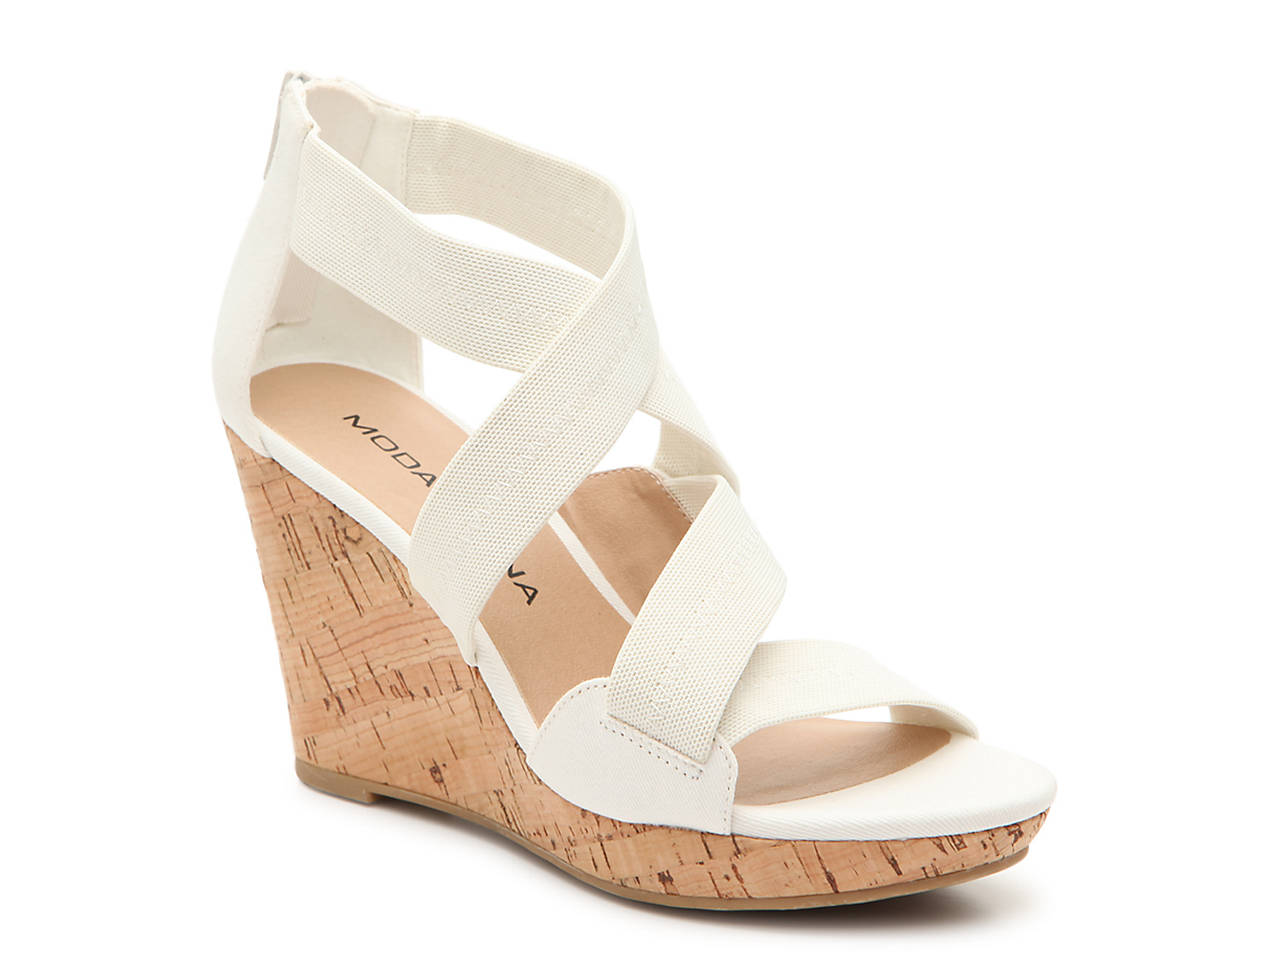 2051c0c695fb Moda Spana Flute Wedge Sandal Women s Shoes